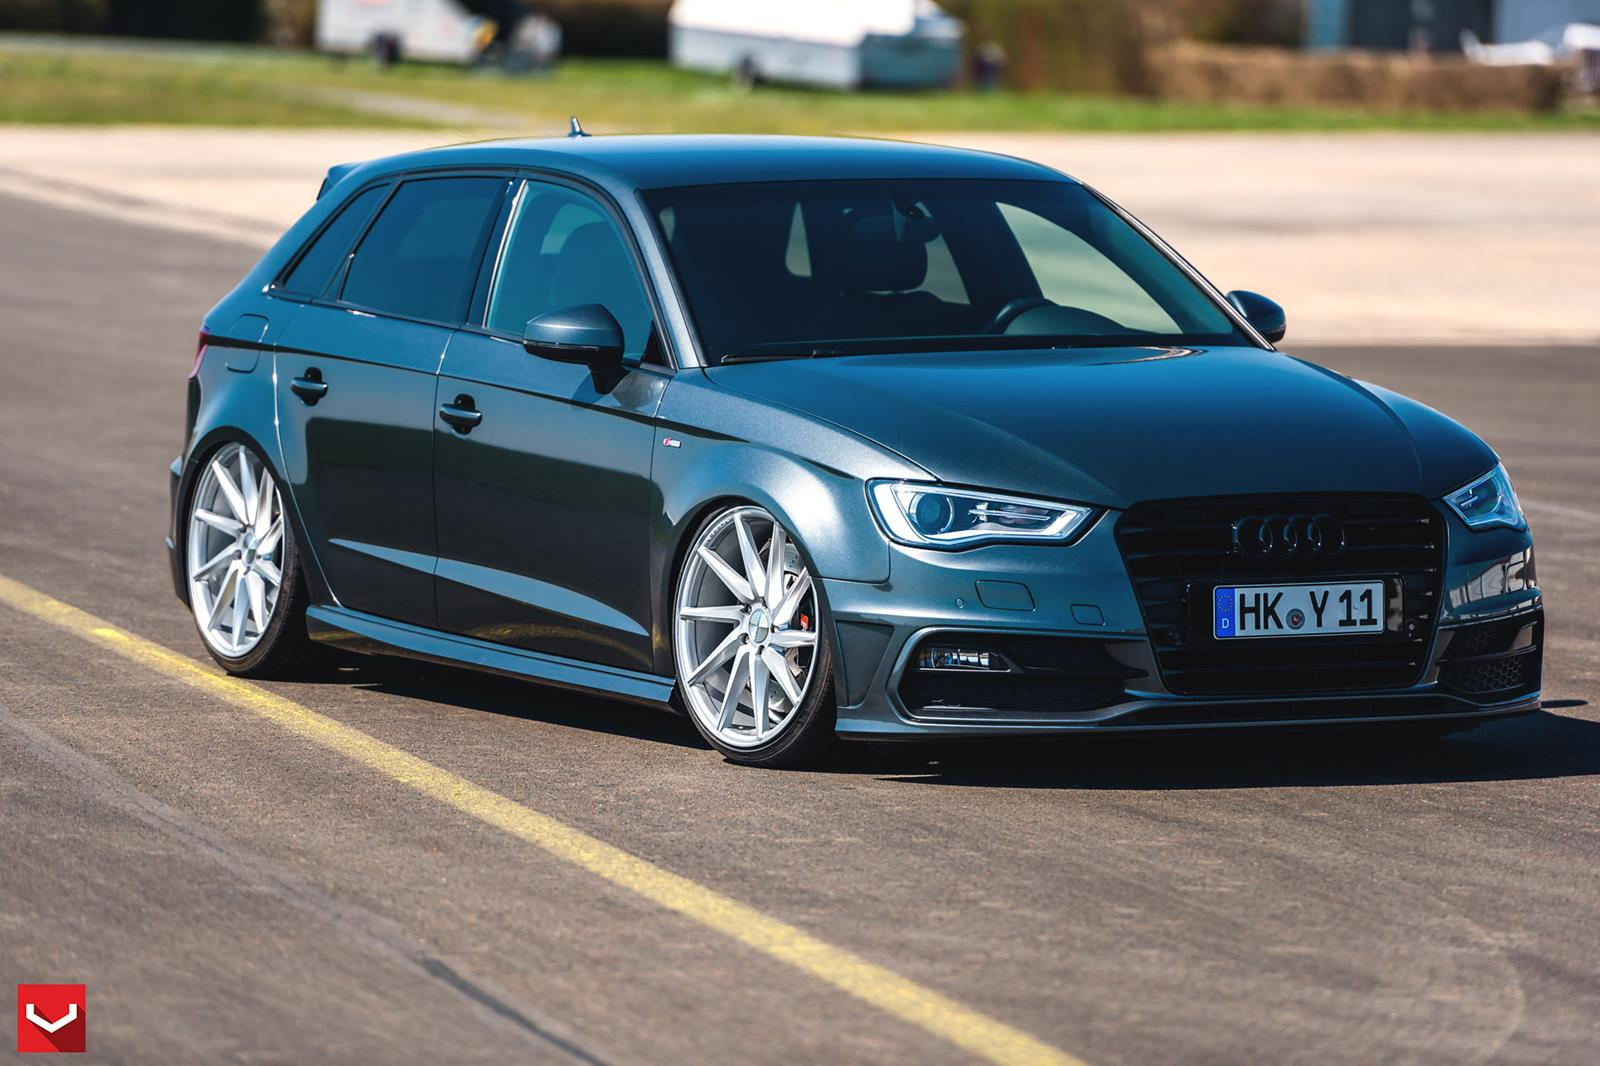 2018 audi rs3 new car release date and review 2018 amanda felicia. Black Bedroom Furniture Sets. Home Design Ideas